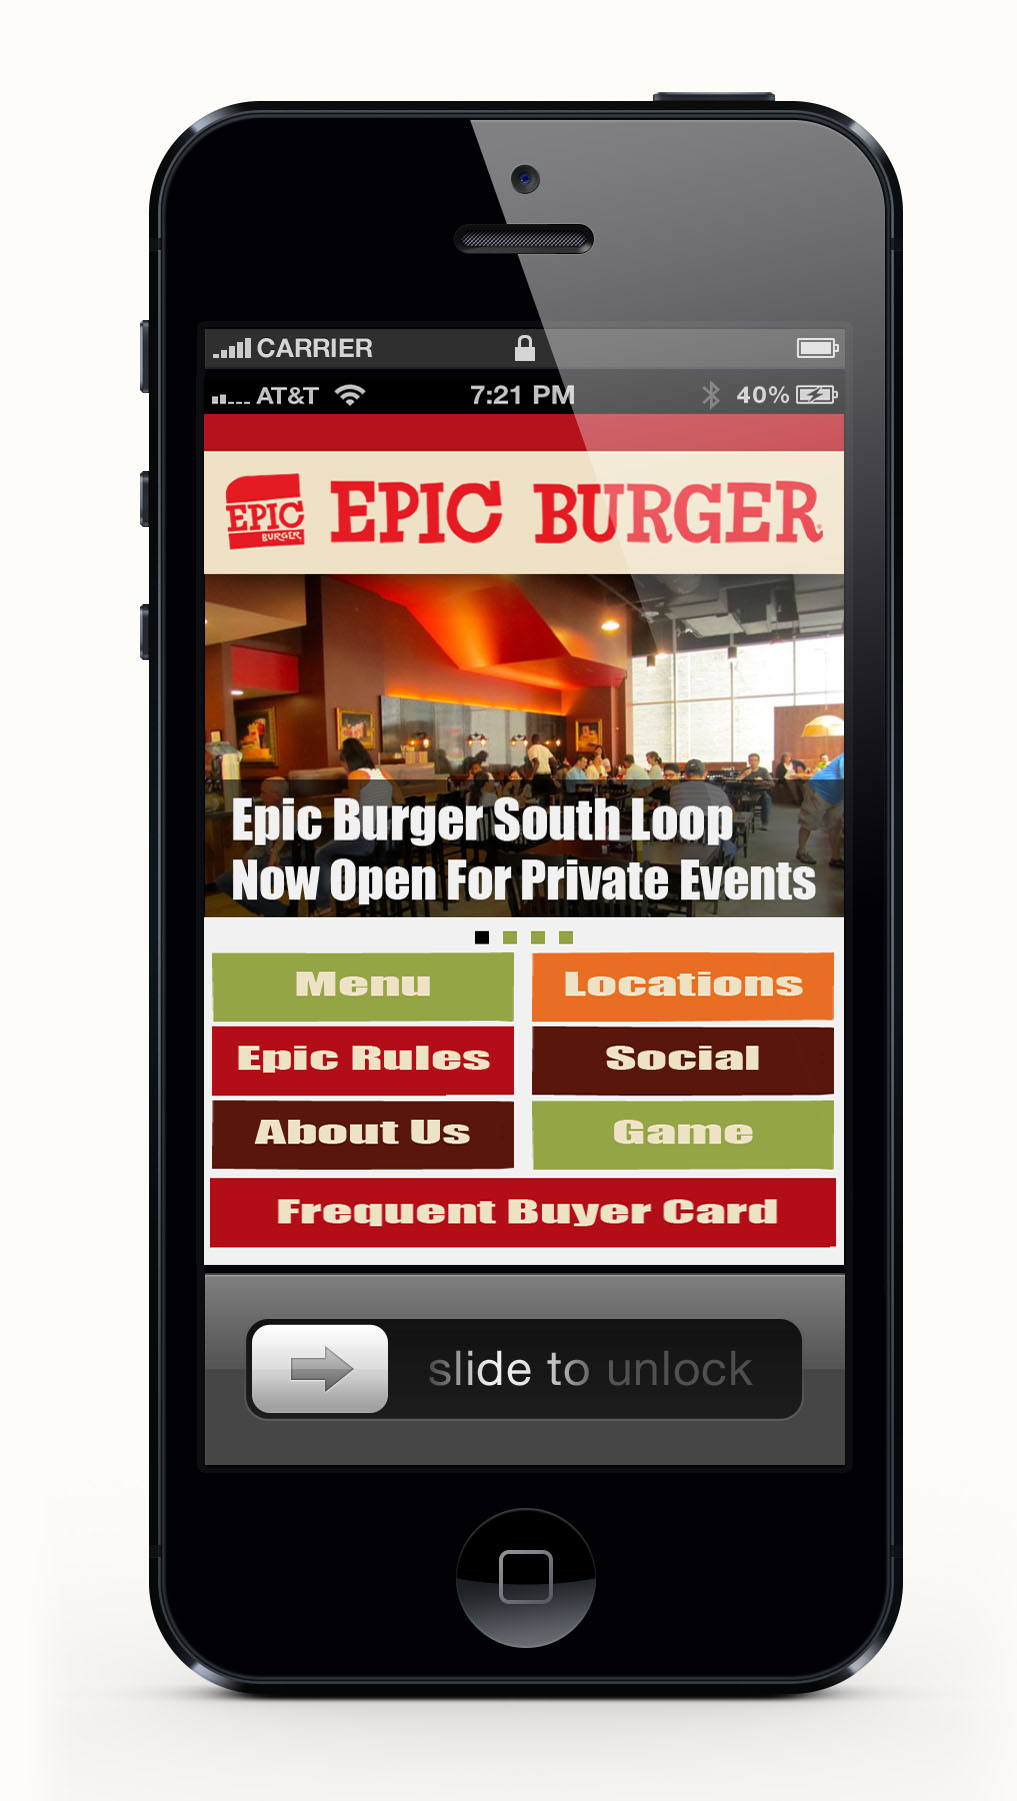 Epic Burger Iphone.jpg